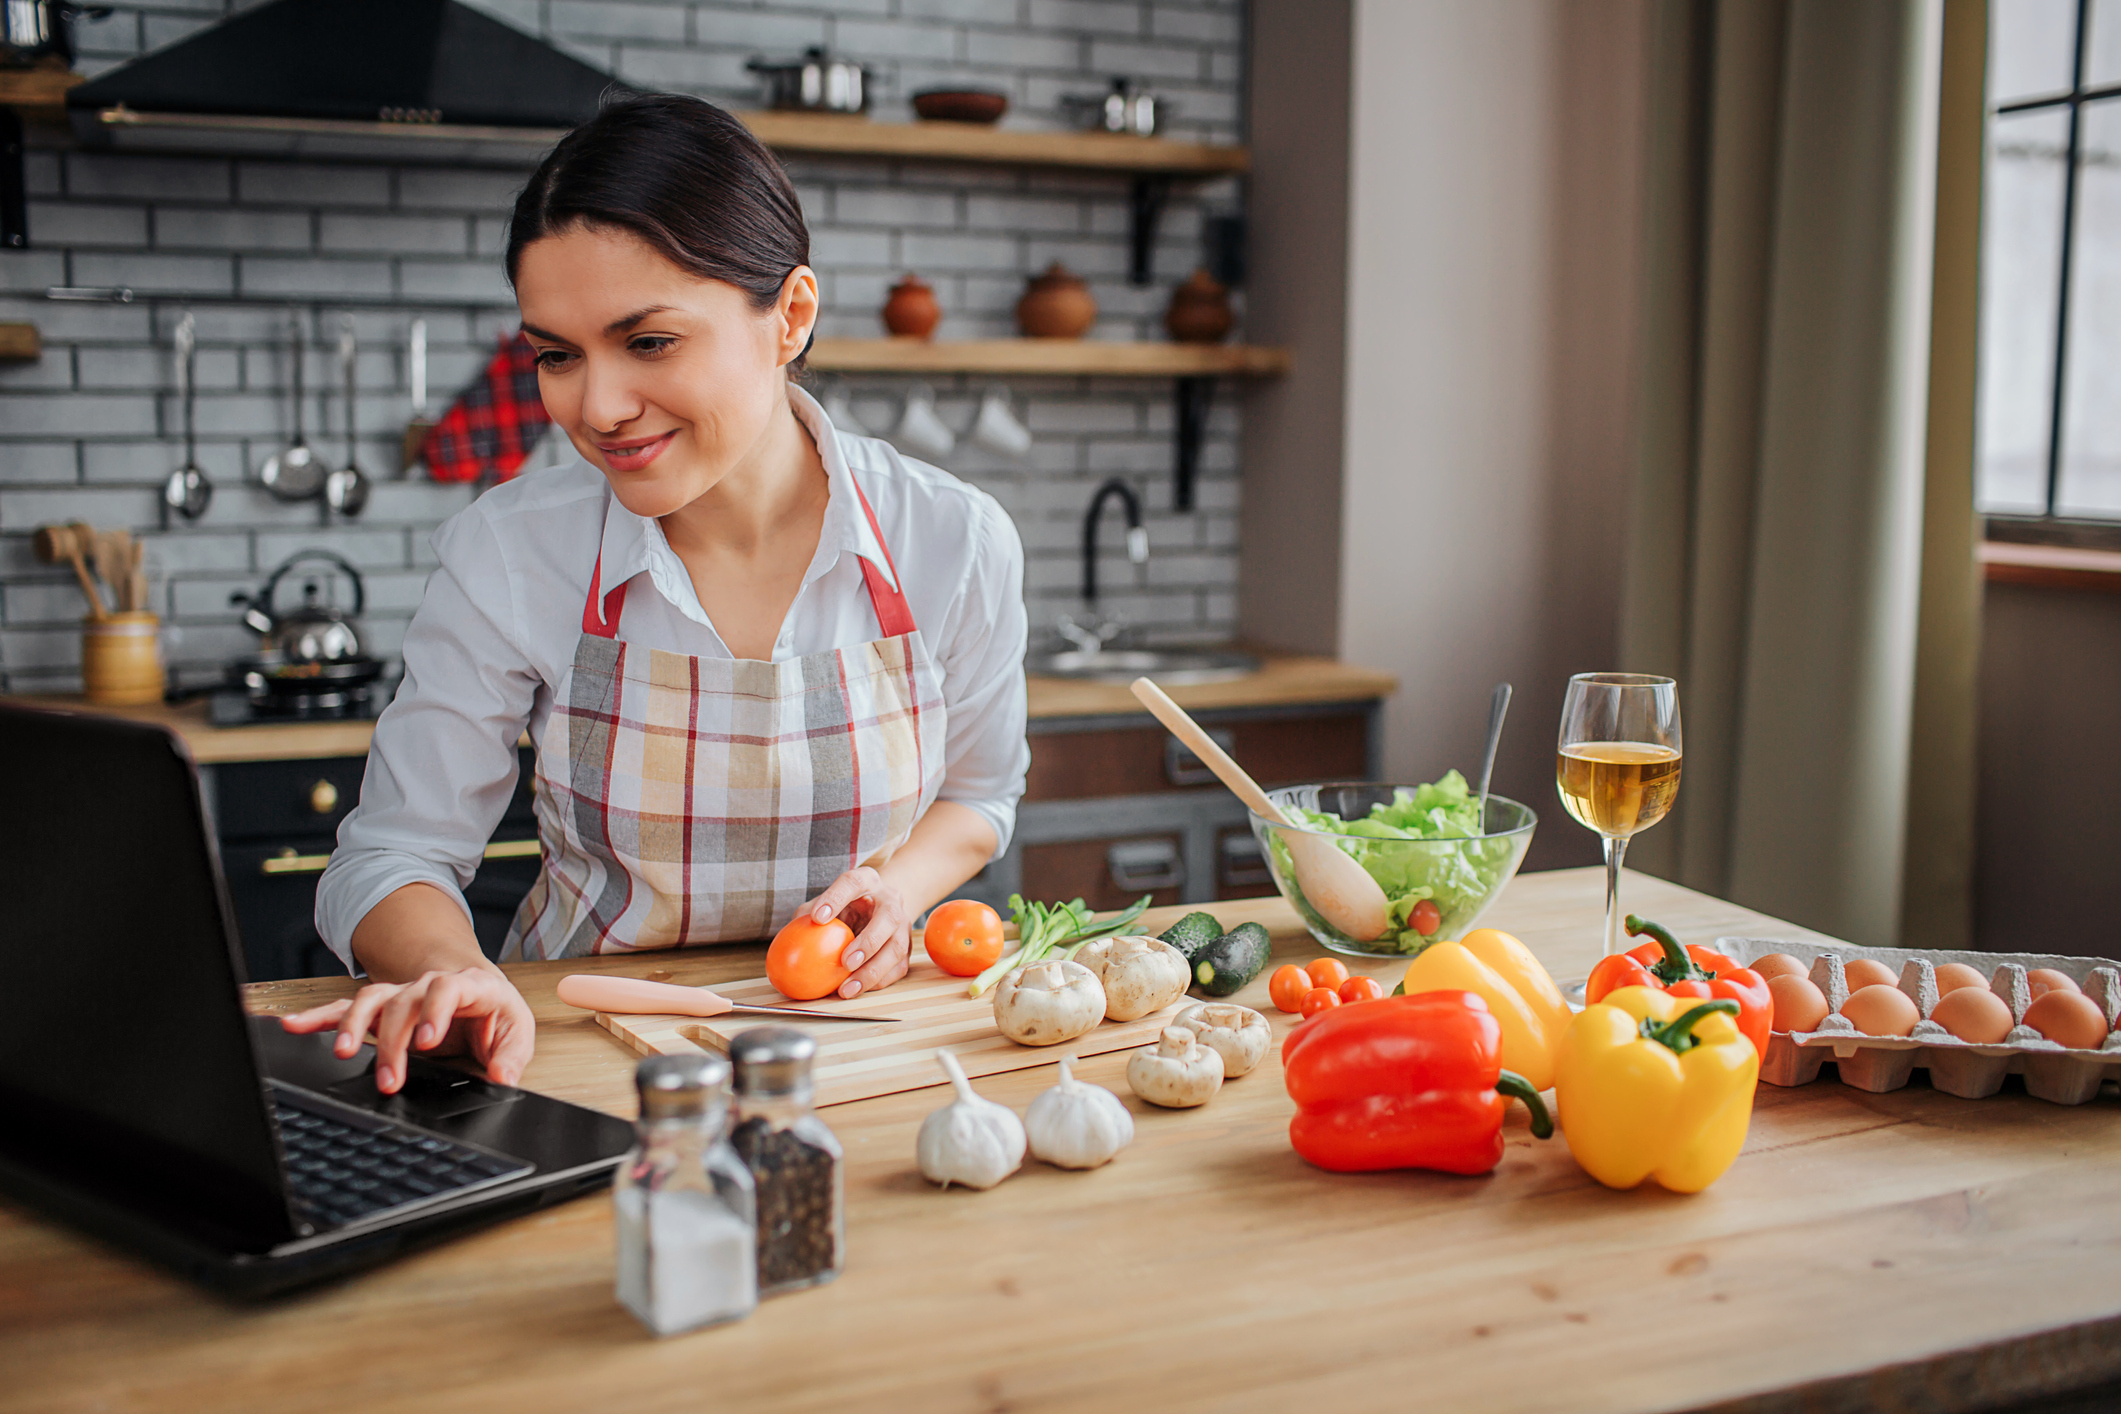 Enhance Your Culinary Skills with Online Classes